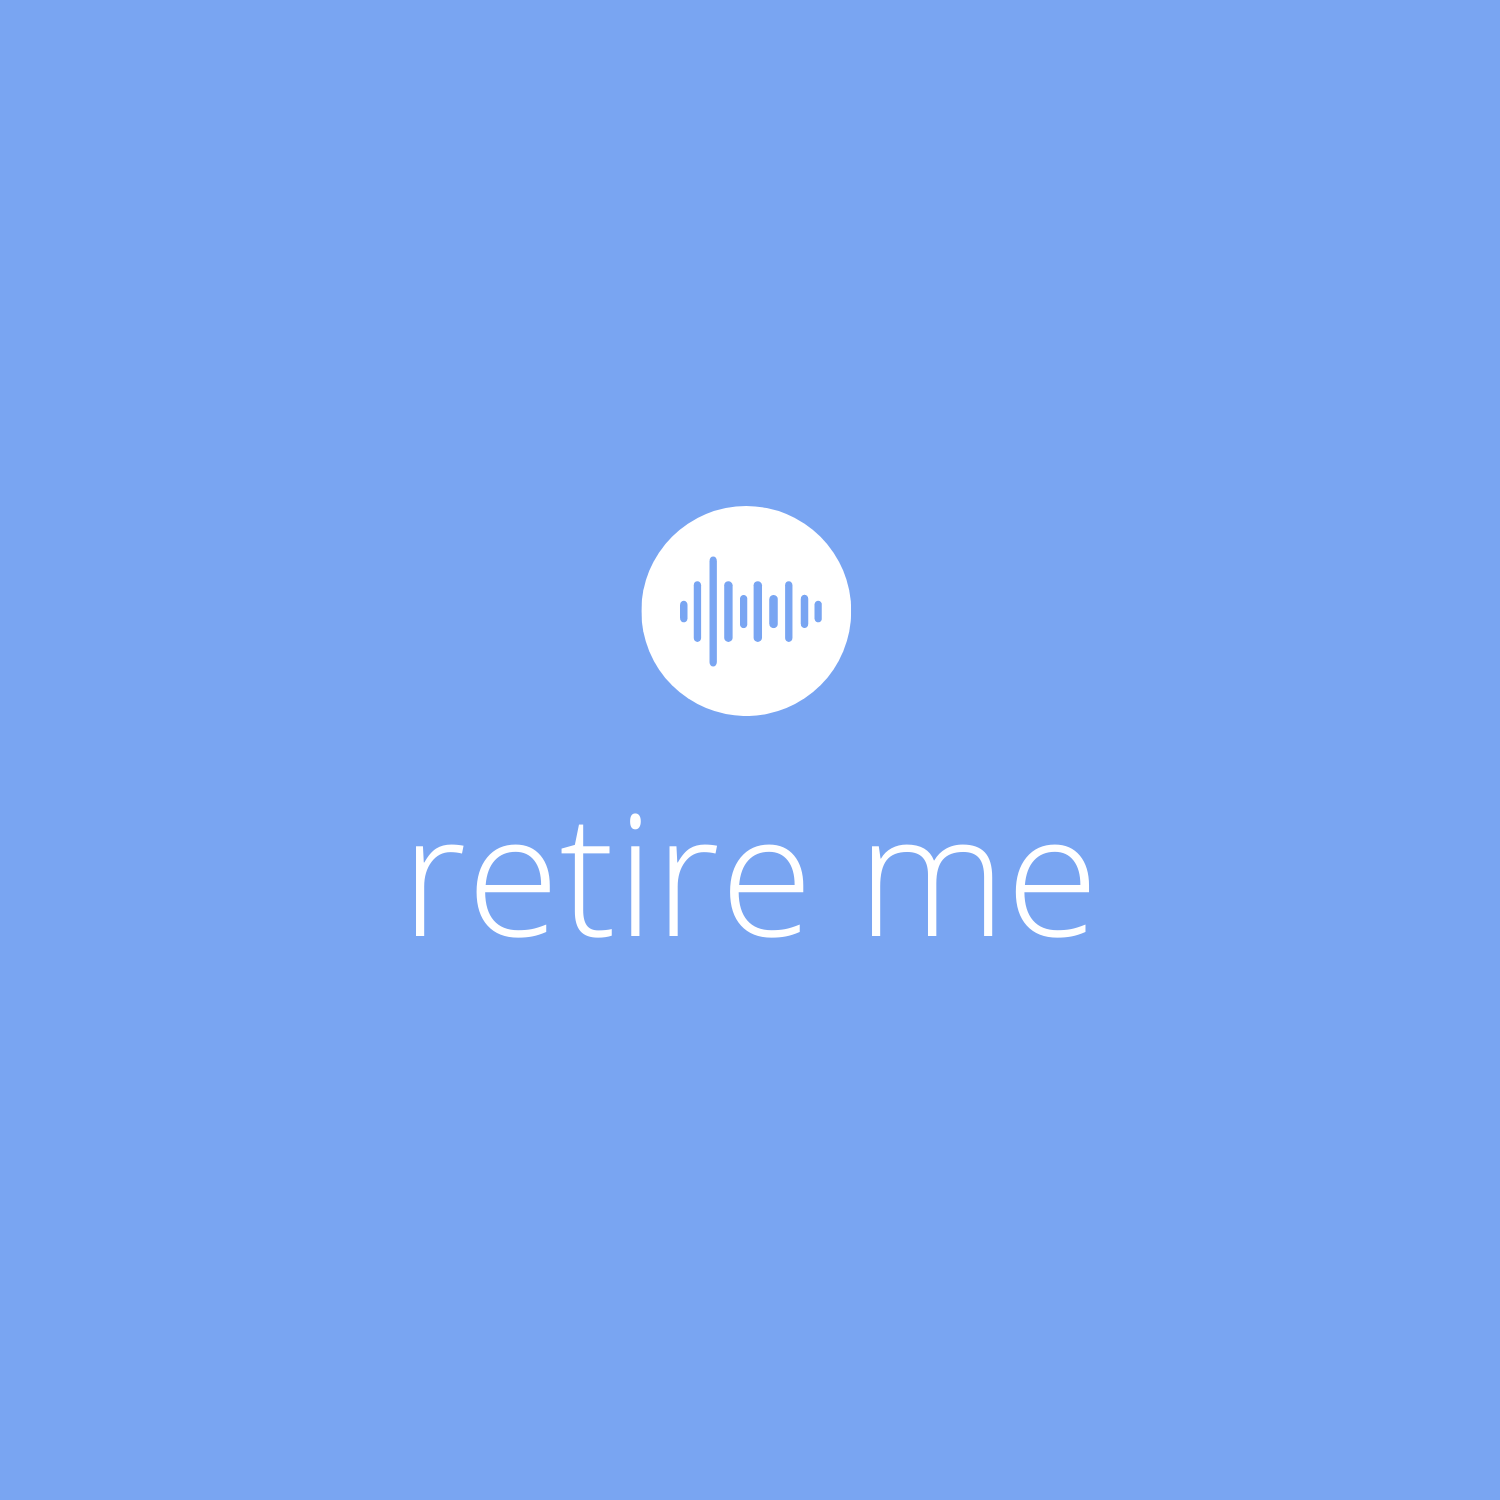 Retire Me - Episode 8 - Coronavirus in perspective for investors and 12 reasons to stay optimistic Thumbnail